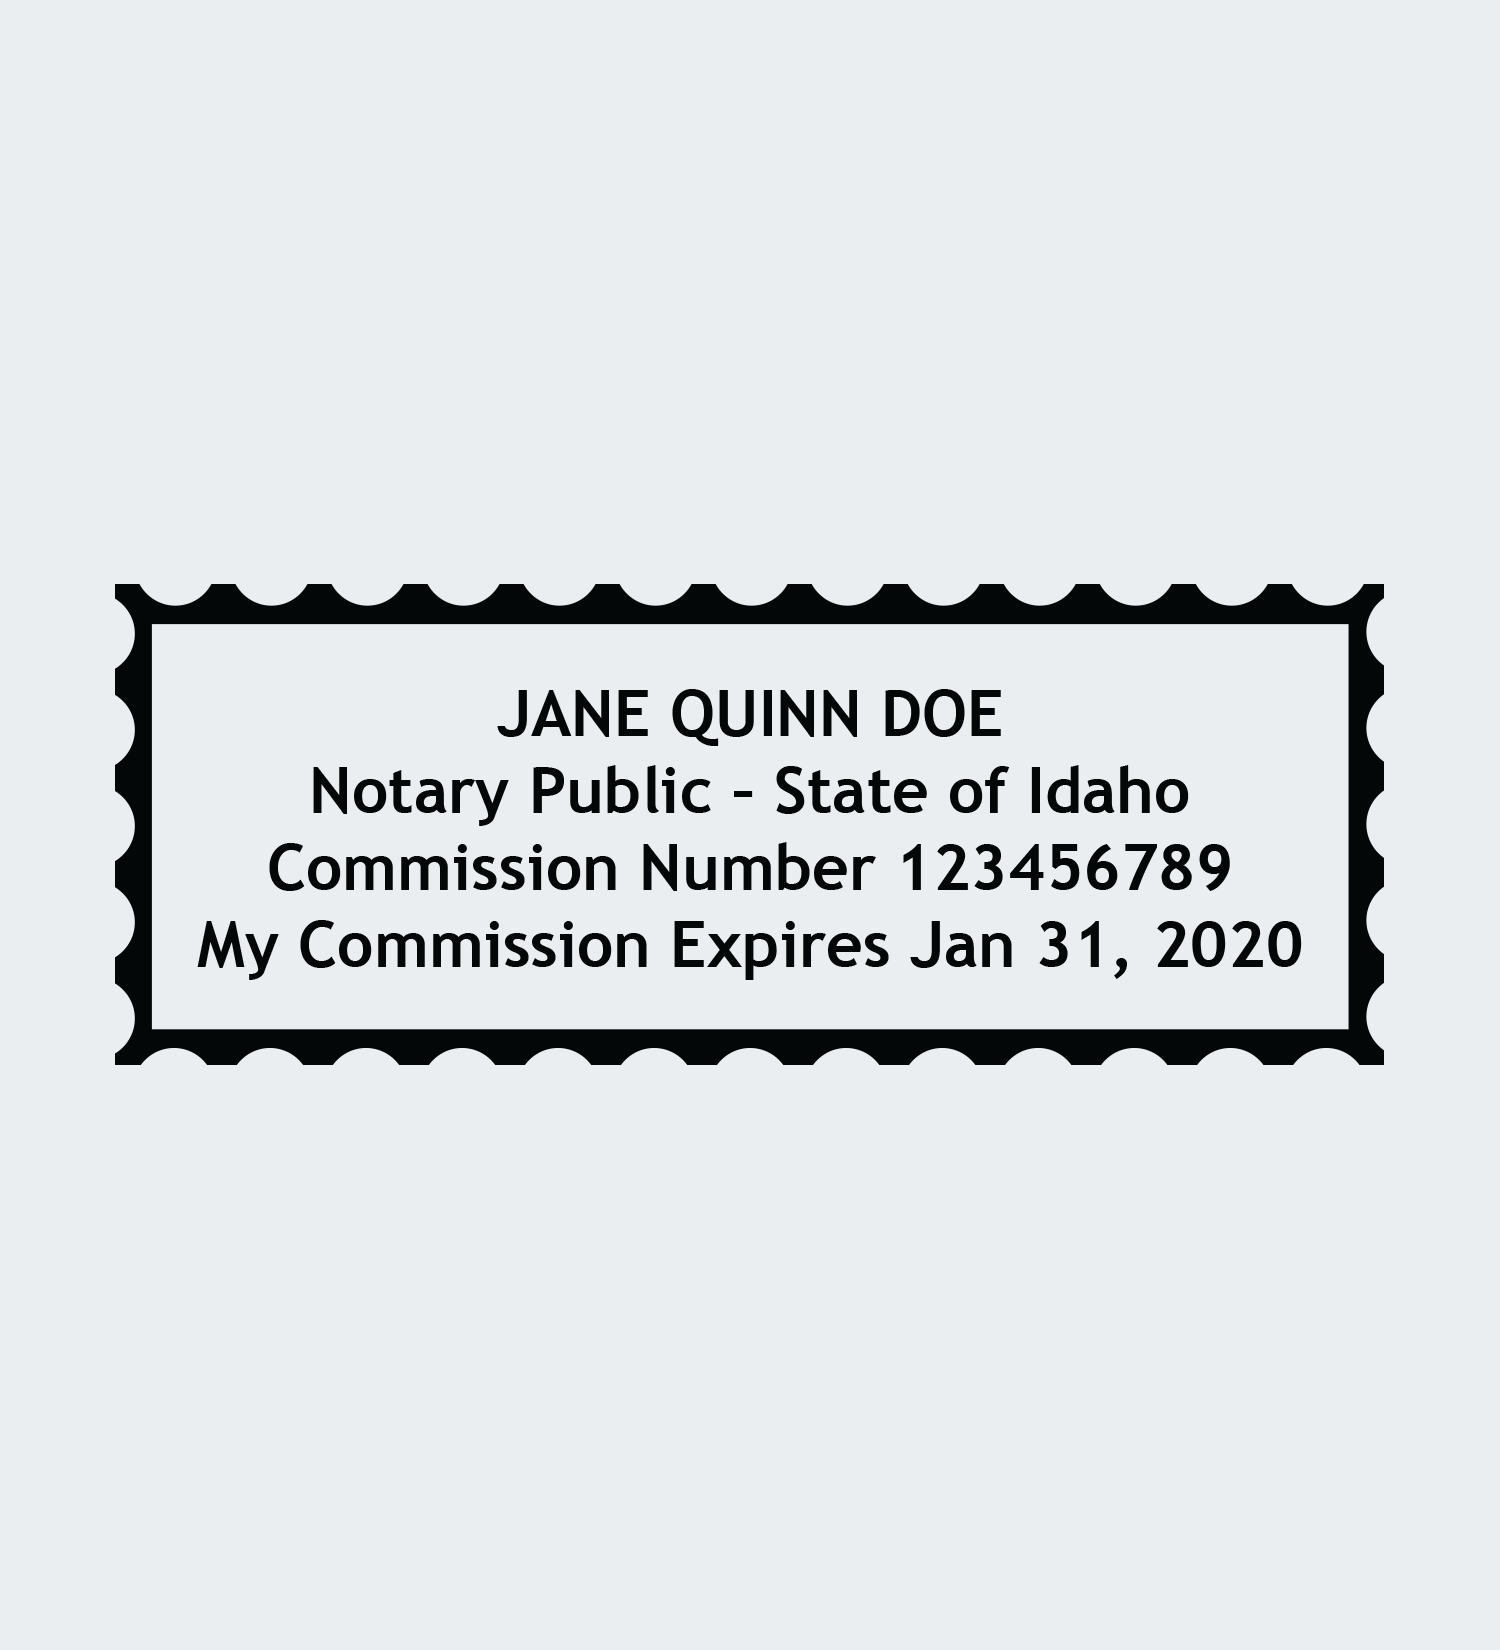 00000-Notary-Seal-Stamp-Impression-Idaho-4line.png